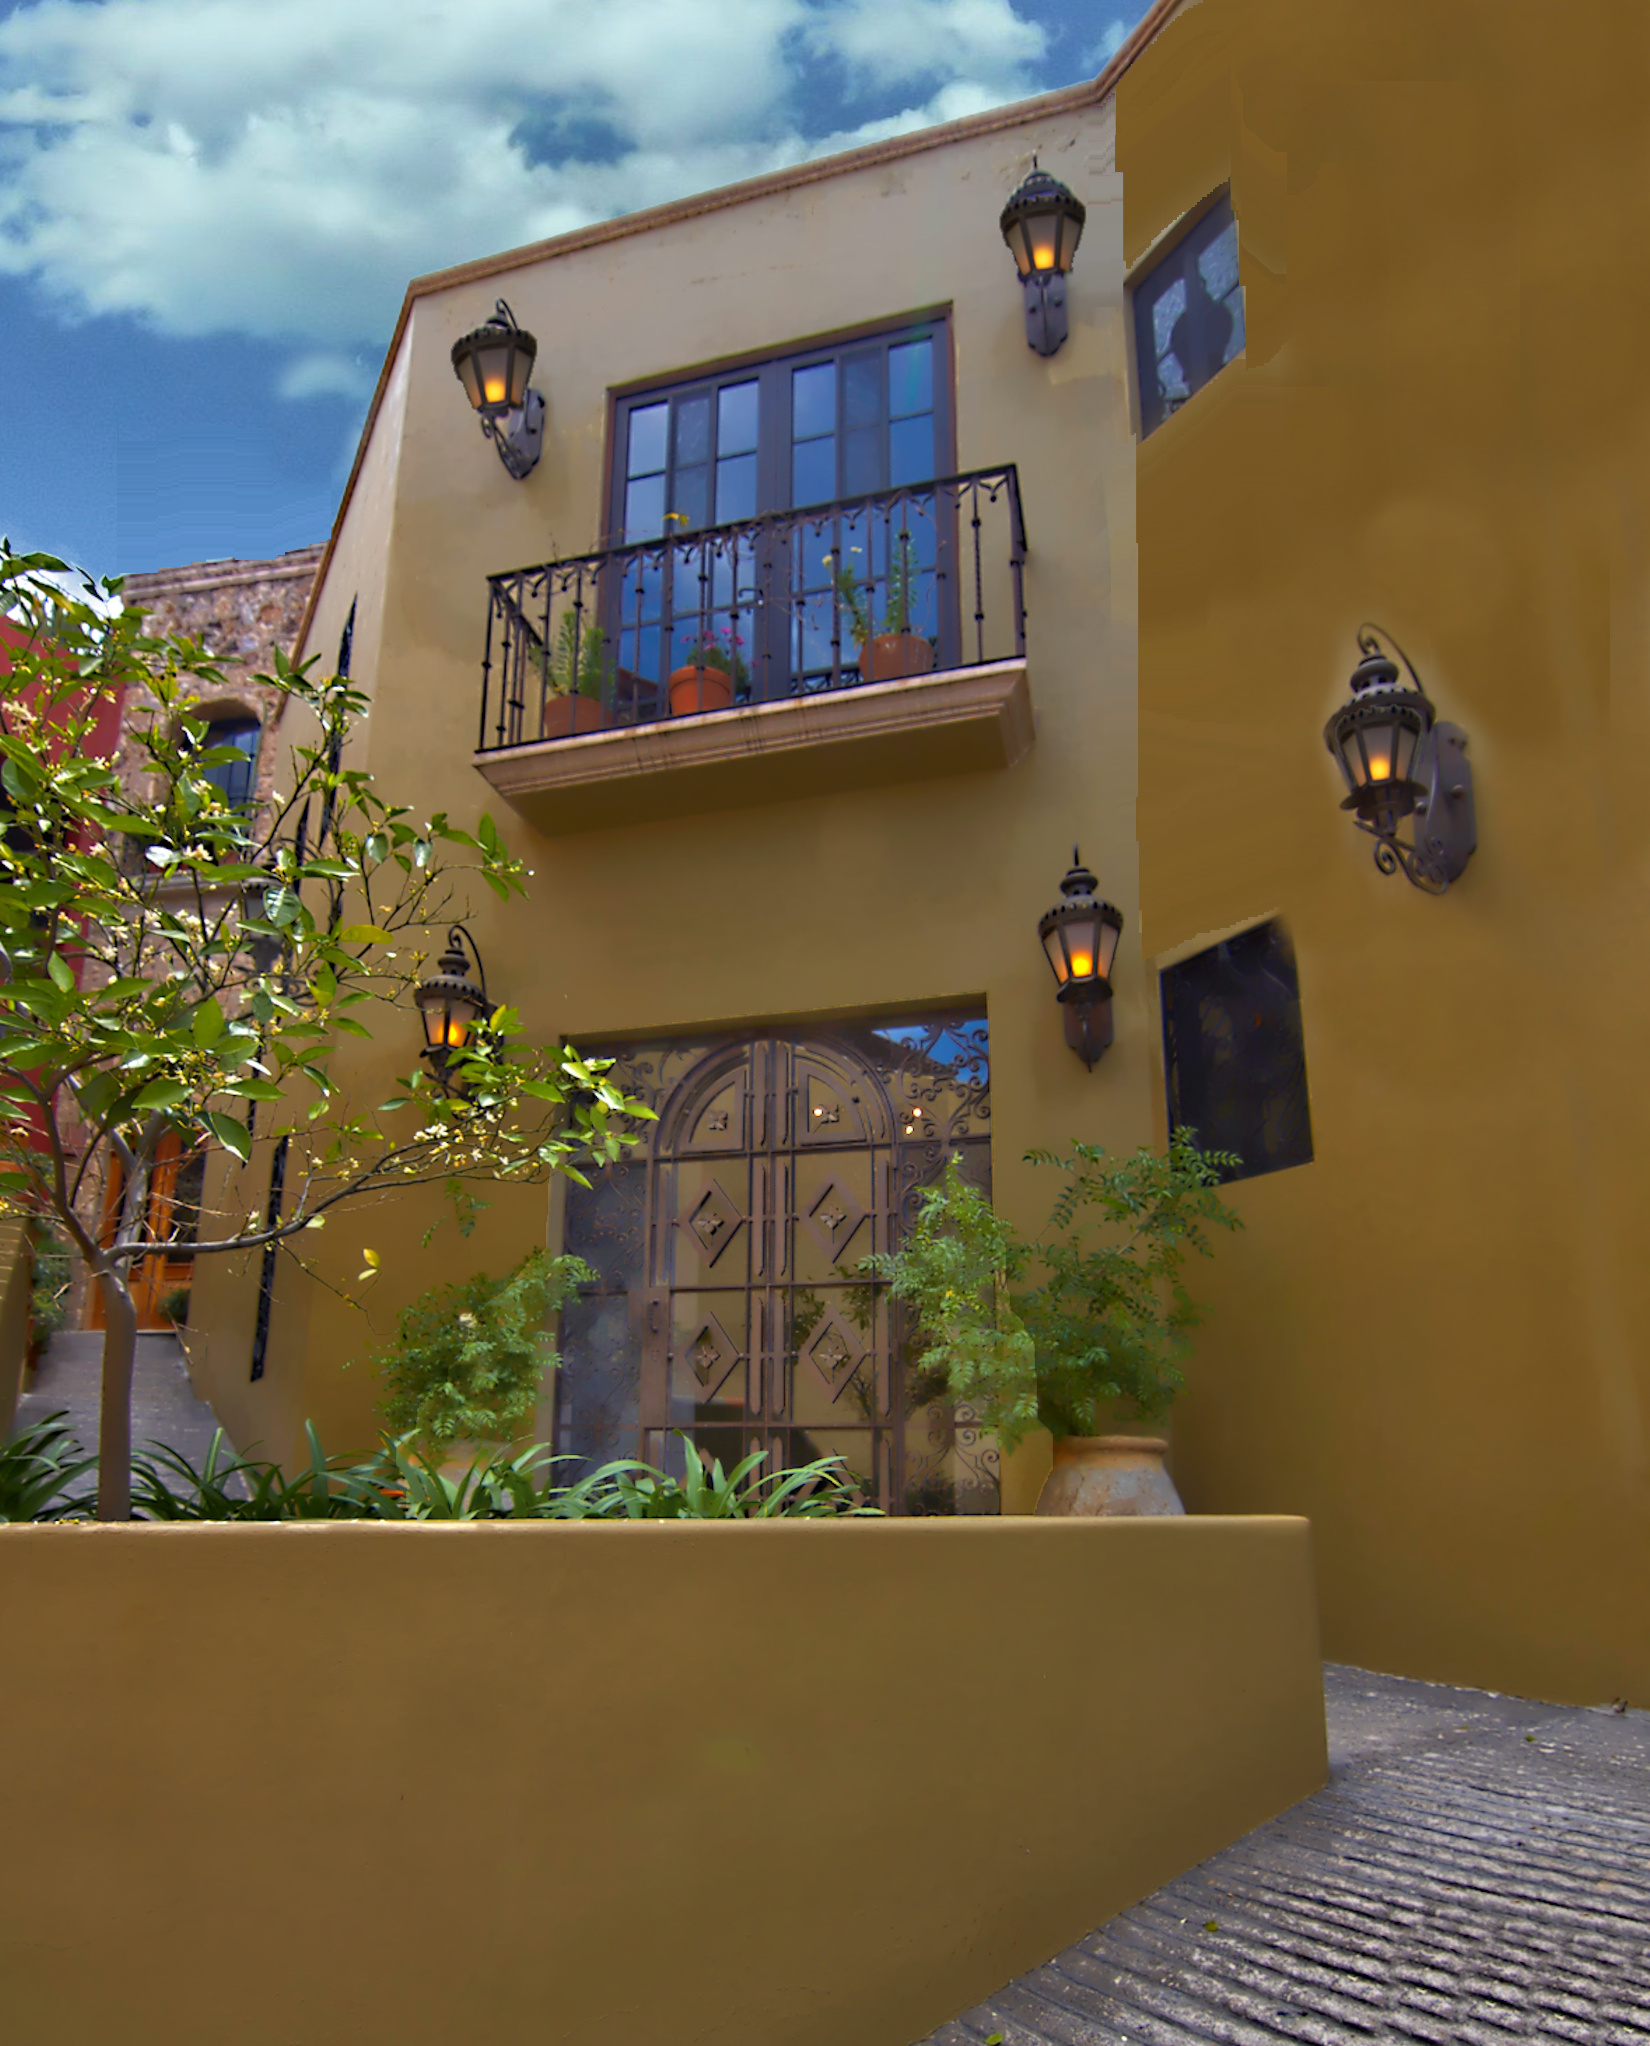 Single Family Home for Sale at CASA CHEPITO Centro, San Miguel De Allende, Guanajuato Mexico